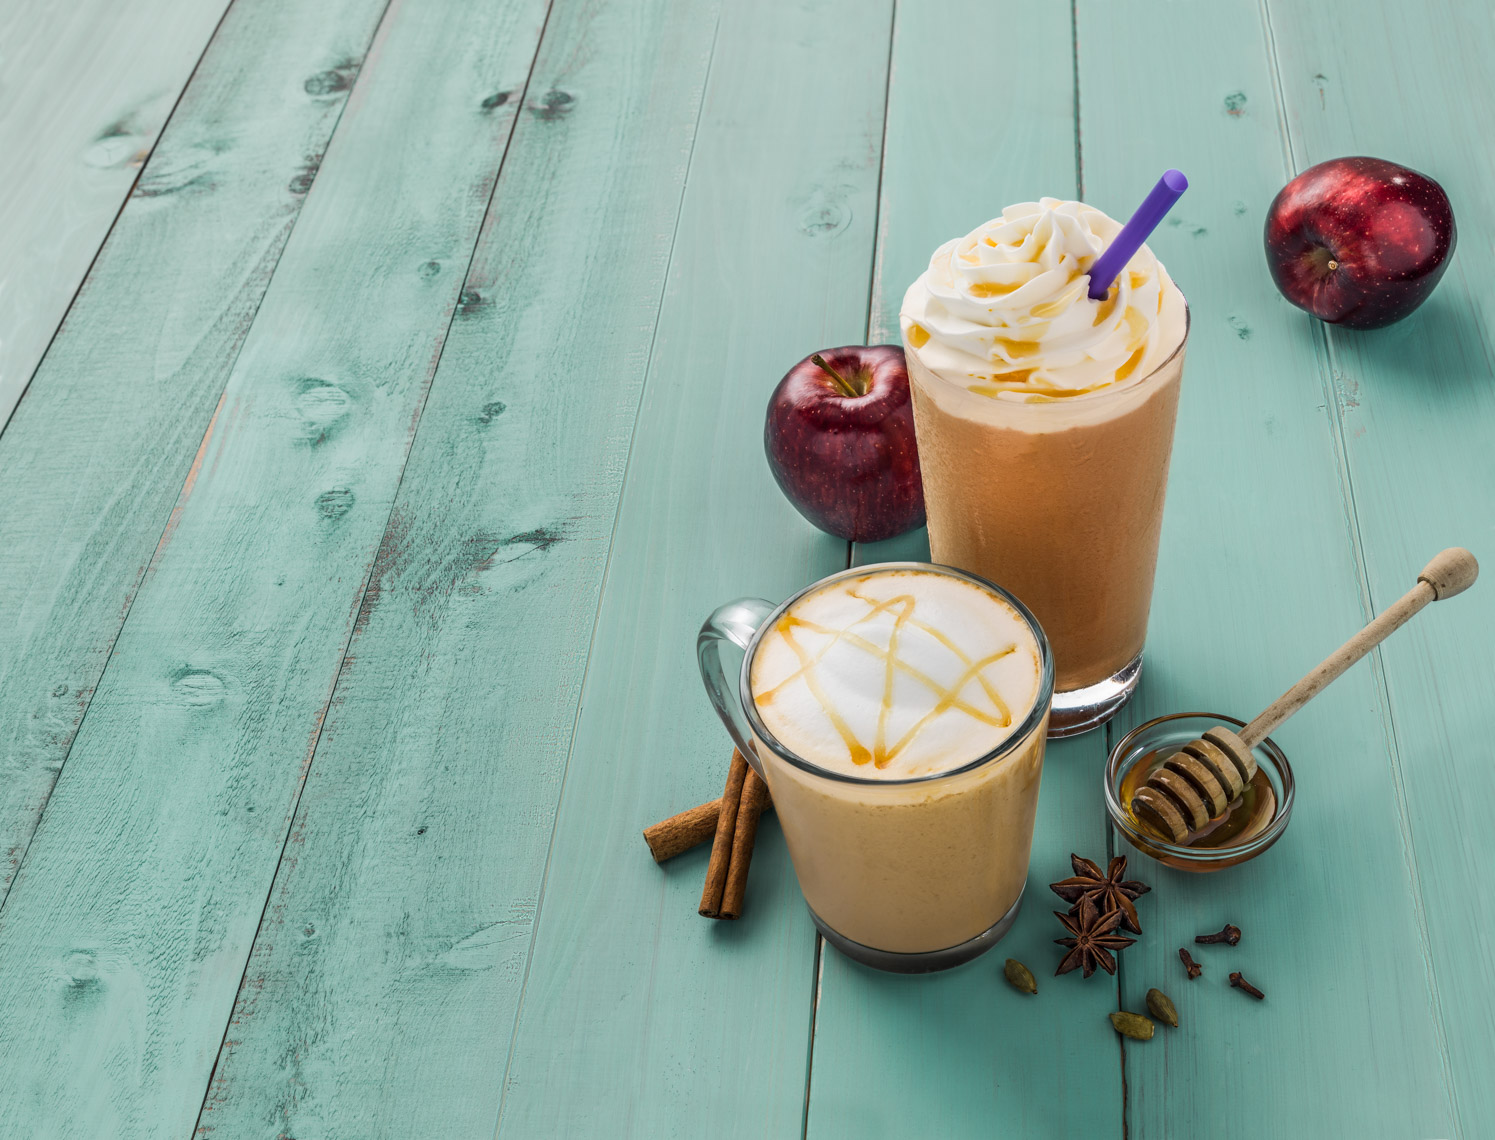 Los Angeles Photographer | Dana Hursey Photography | Beverage Photography | Cinnamon Apple Ice Blended and Chai Latte